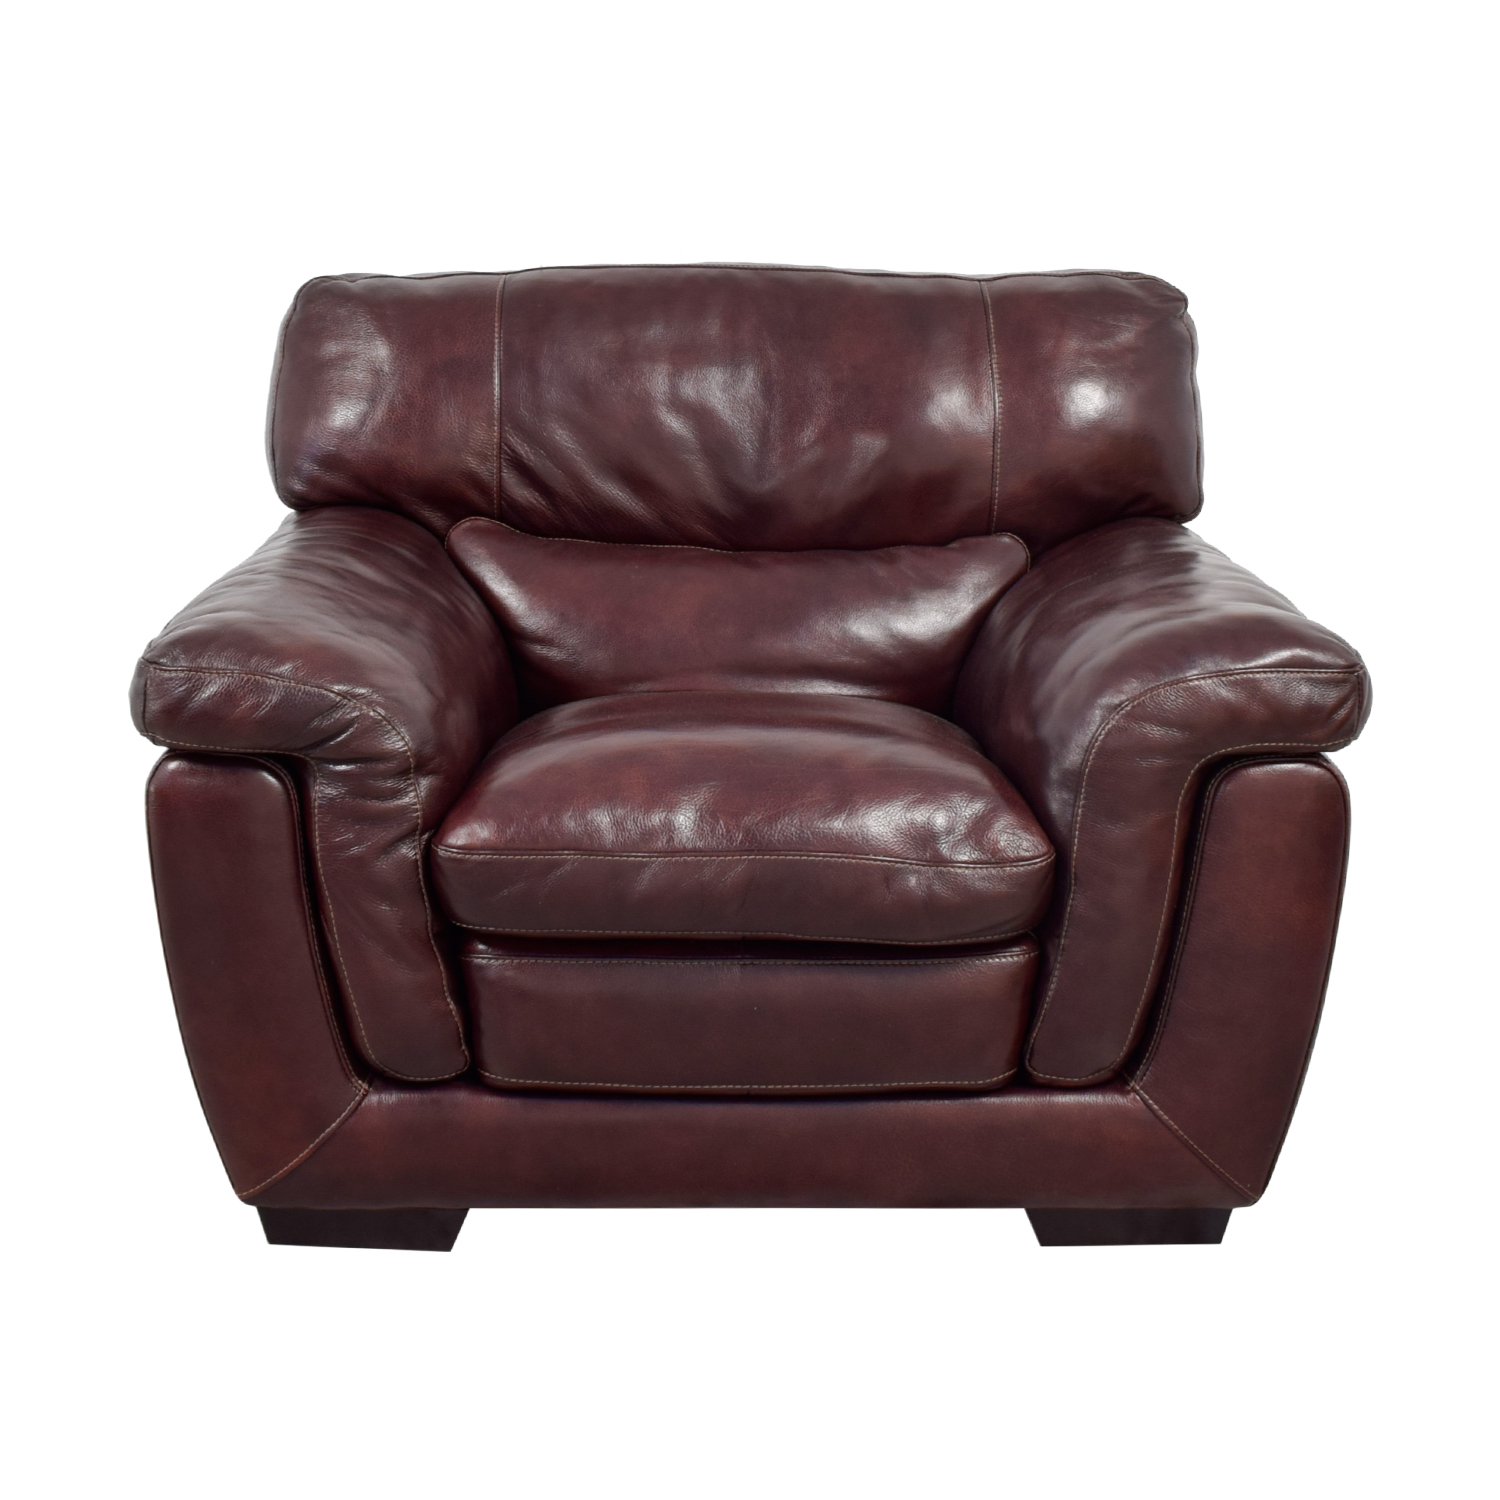 Raymour & Flanigan Raymour & Flanigan Burgundy Leather Accent Chair Dark Cherry